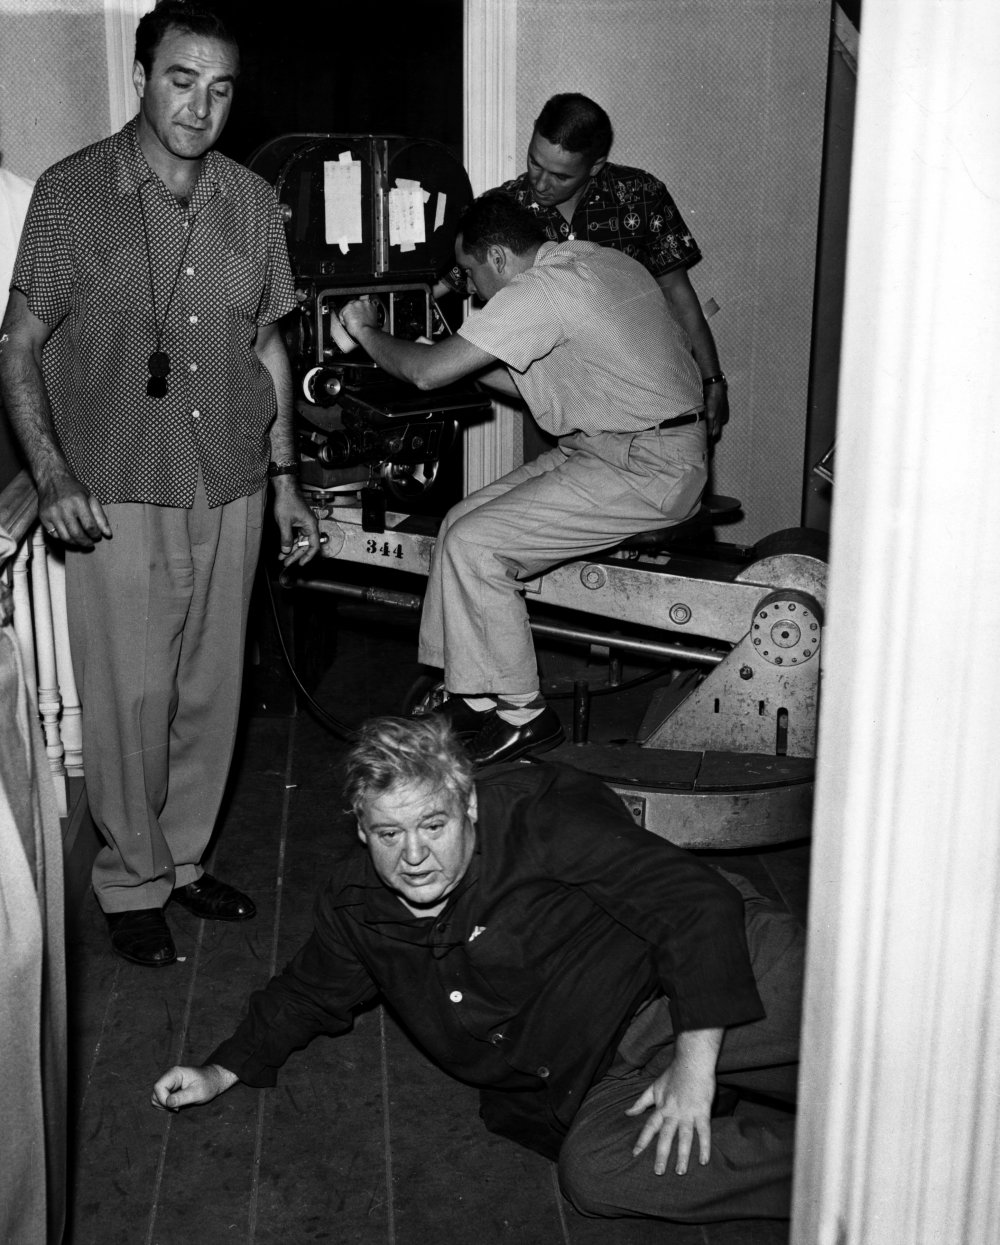 Laughton gets down to the floor to try out a shot with director of photography Stanley Cortez, also known for his work with Orson Welles. Cortez later commented: 'Apart from The Magnificent Ambersons, the most exciting experience I have had in the cinema was with Charles Laughton on Night of the Hunter.'